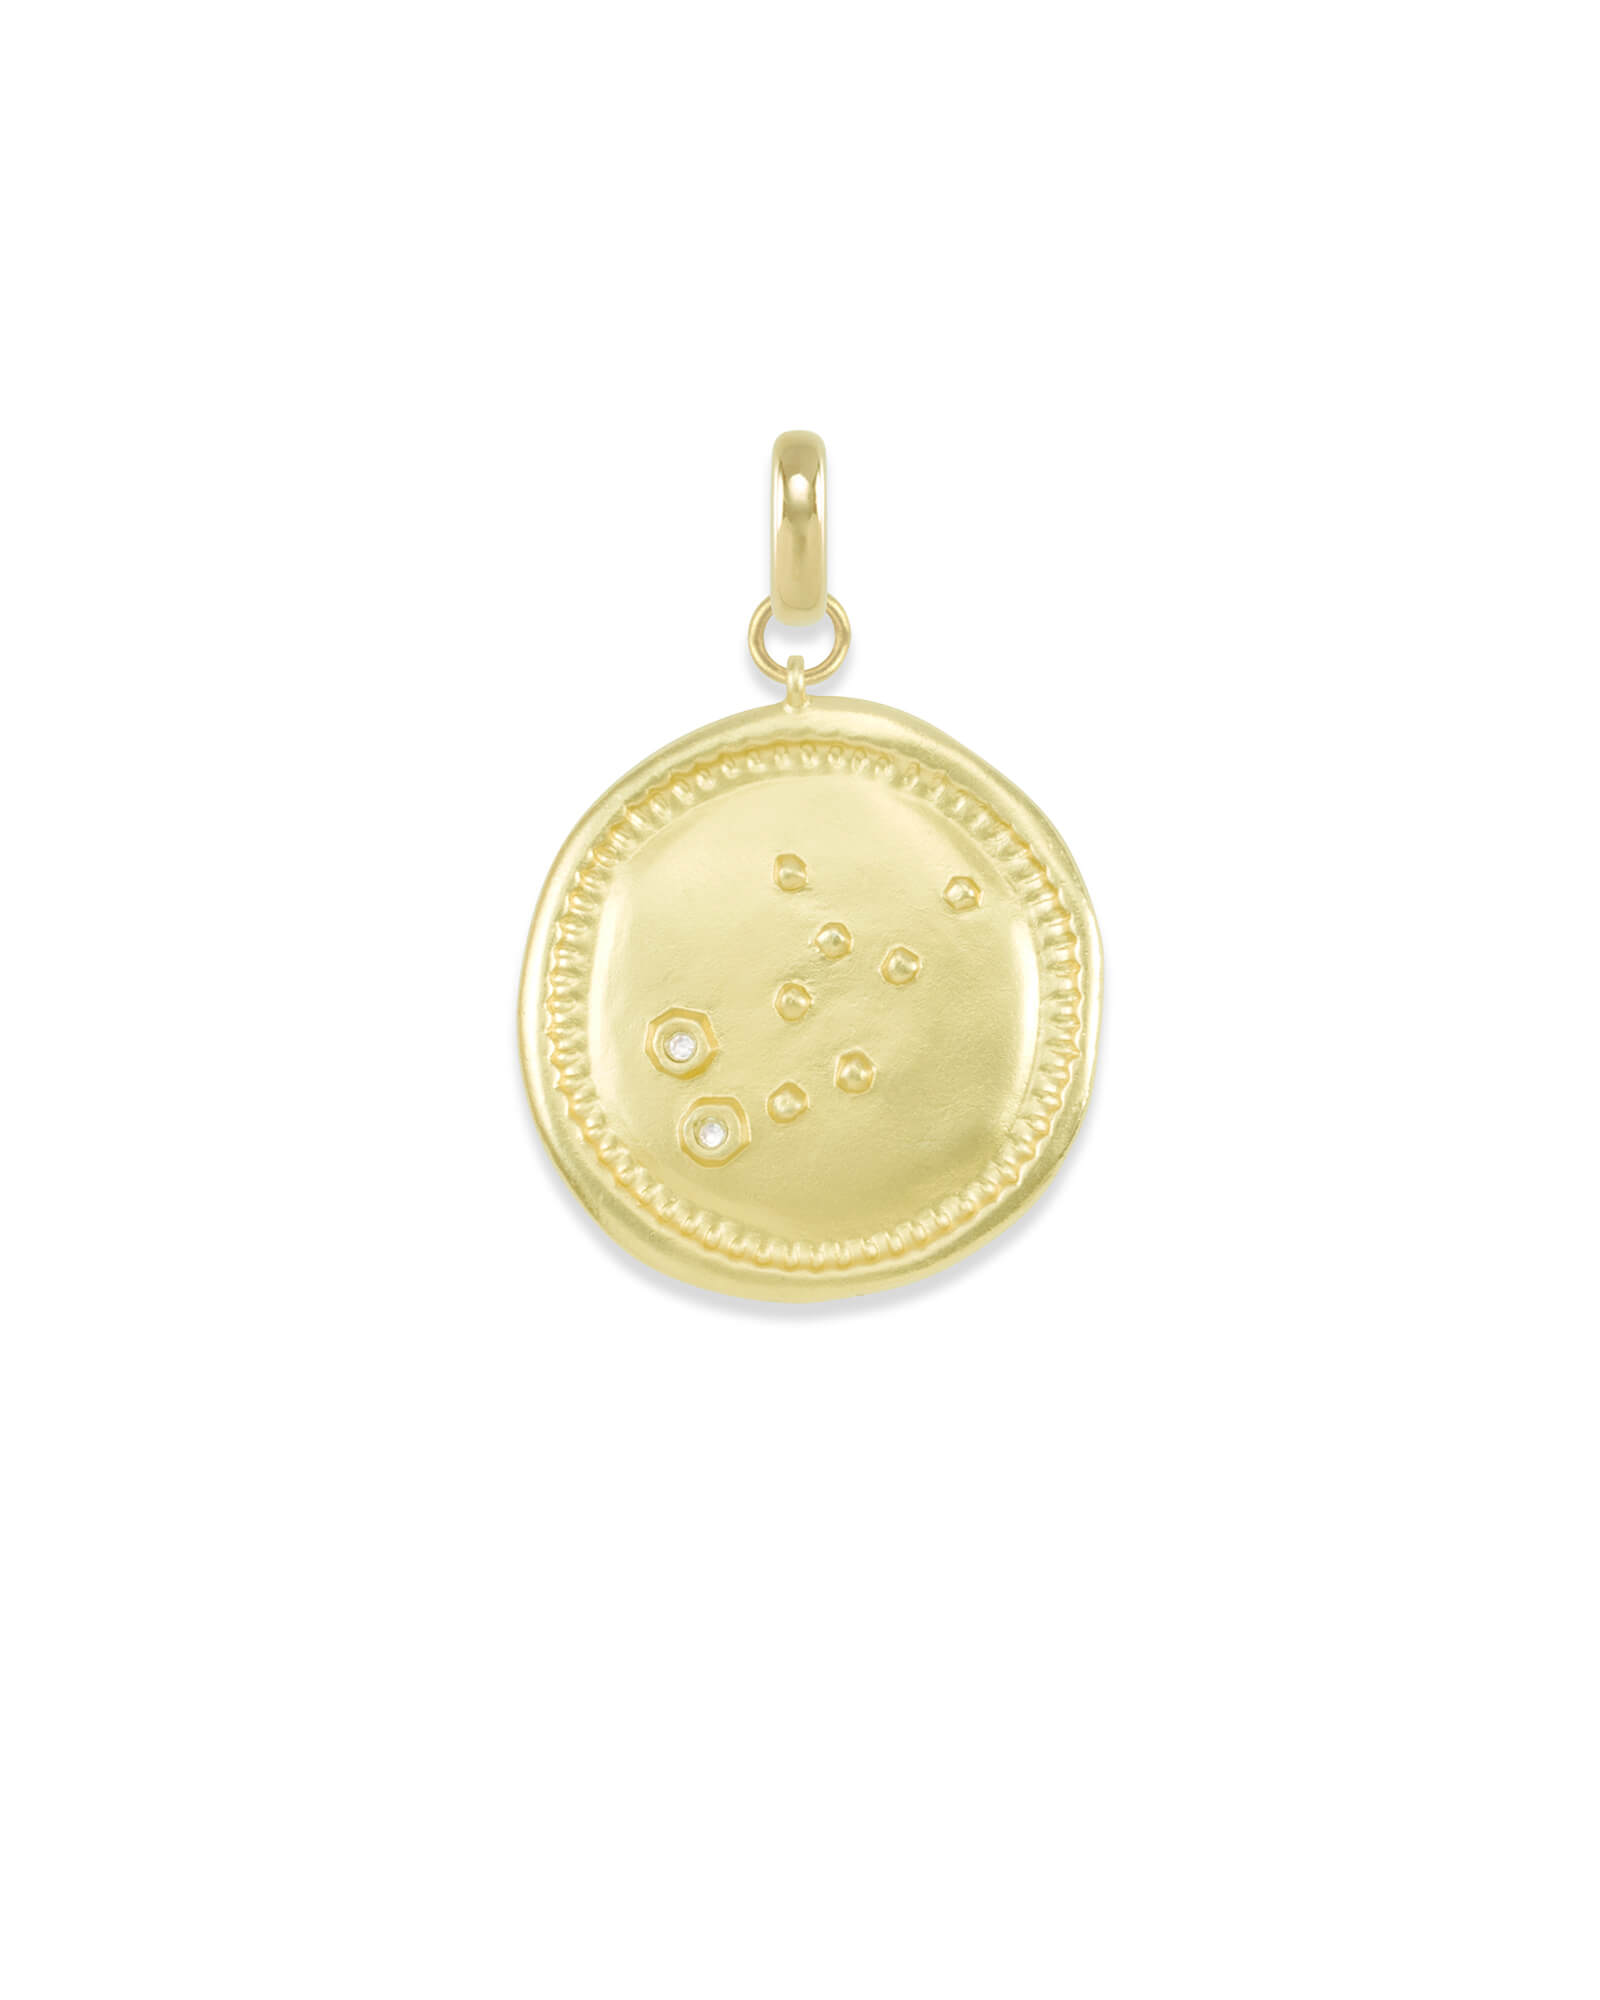 Virgo Large Coin Charm